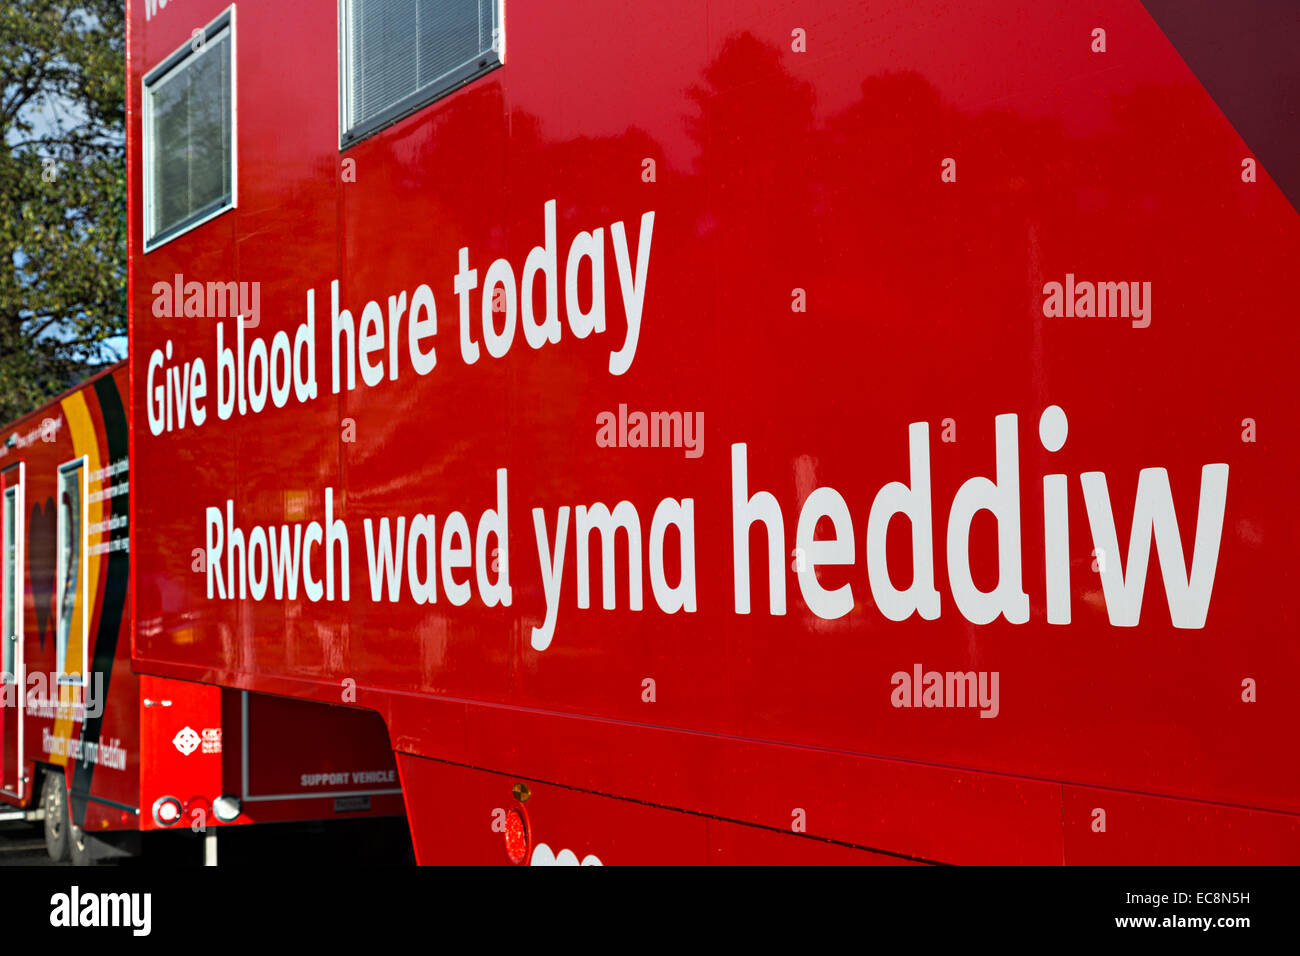 Give blood here today mobile van in English and Welsh, Abergavenny, Wales, UK - Stock Image